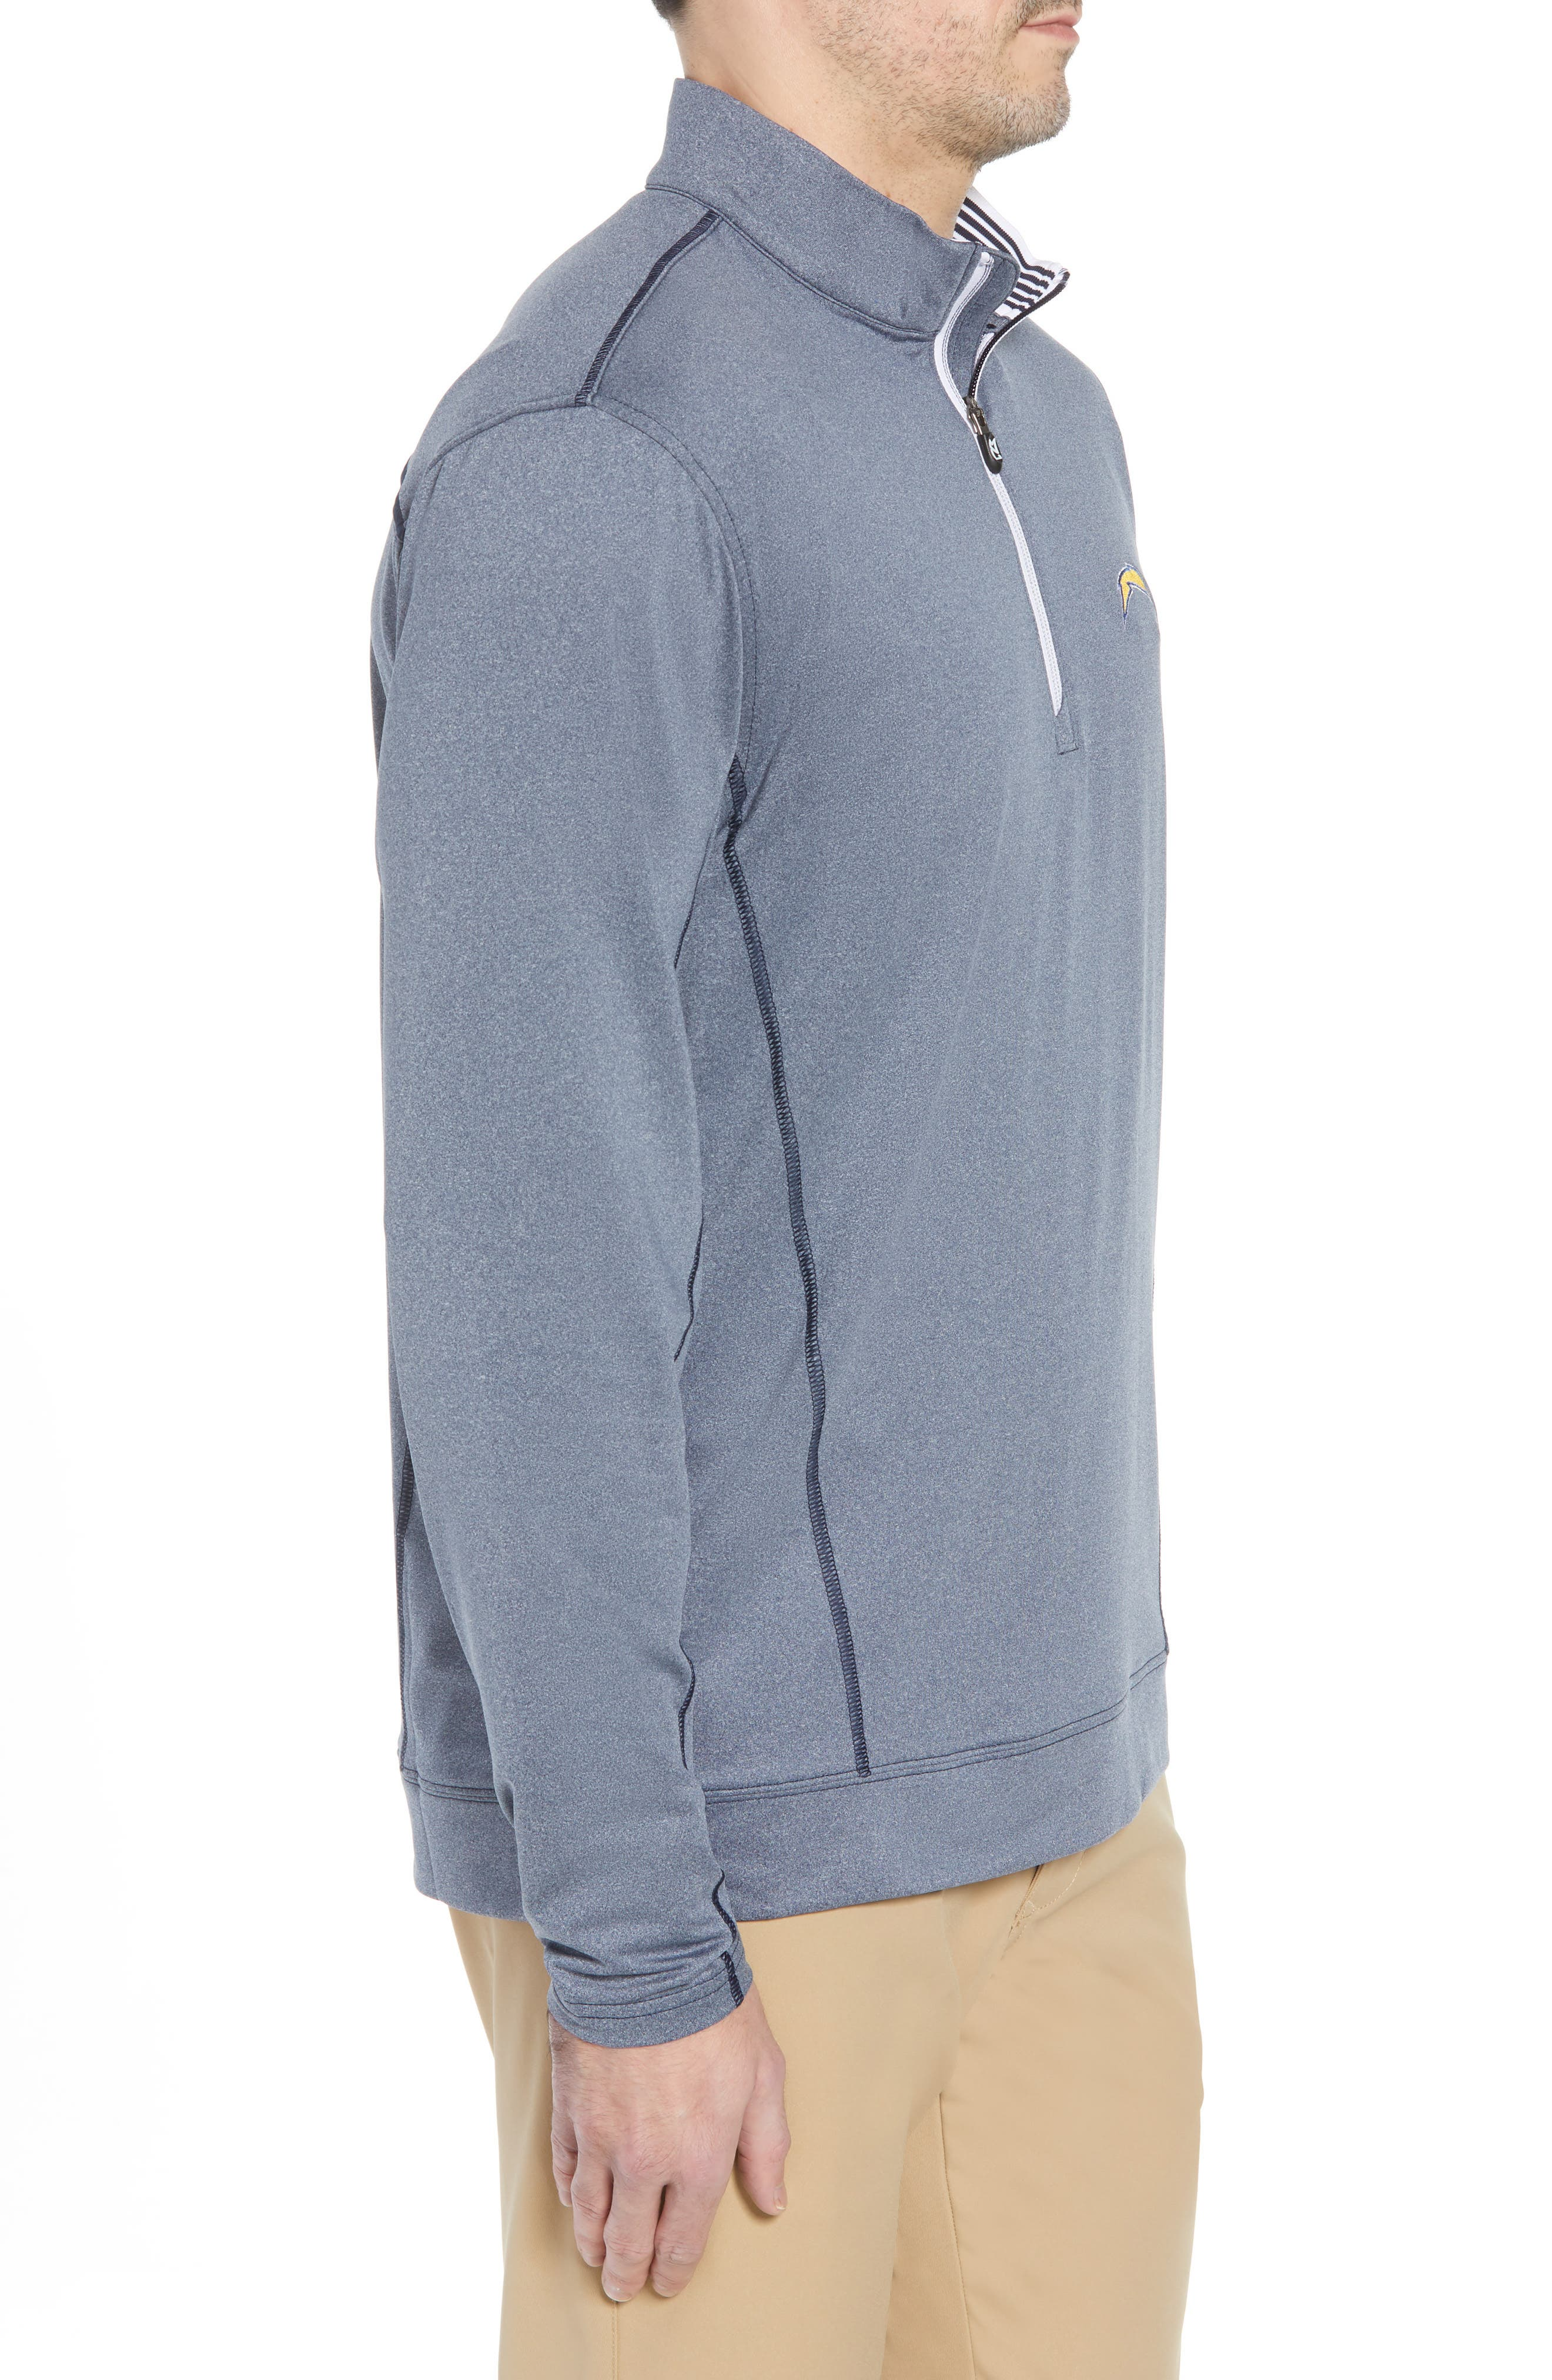 Endurance Los Angeles Chargers Regular Fit Pullover,                             Alternate thumbnail 3, color,                             LIBERTY NAVY HEATHER